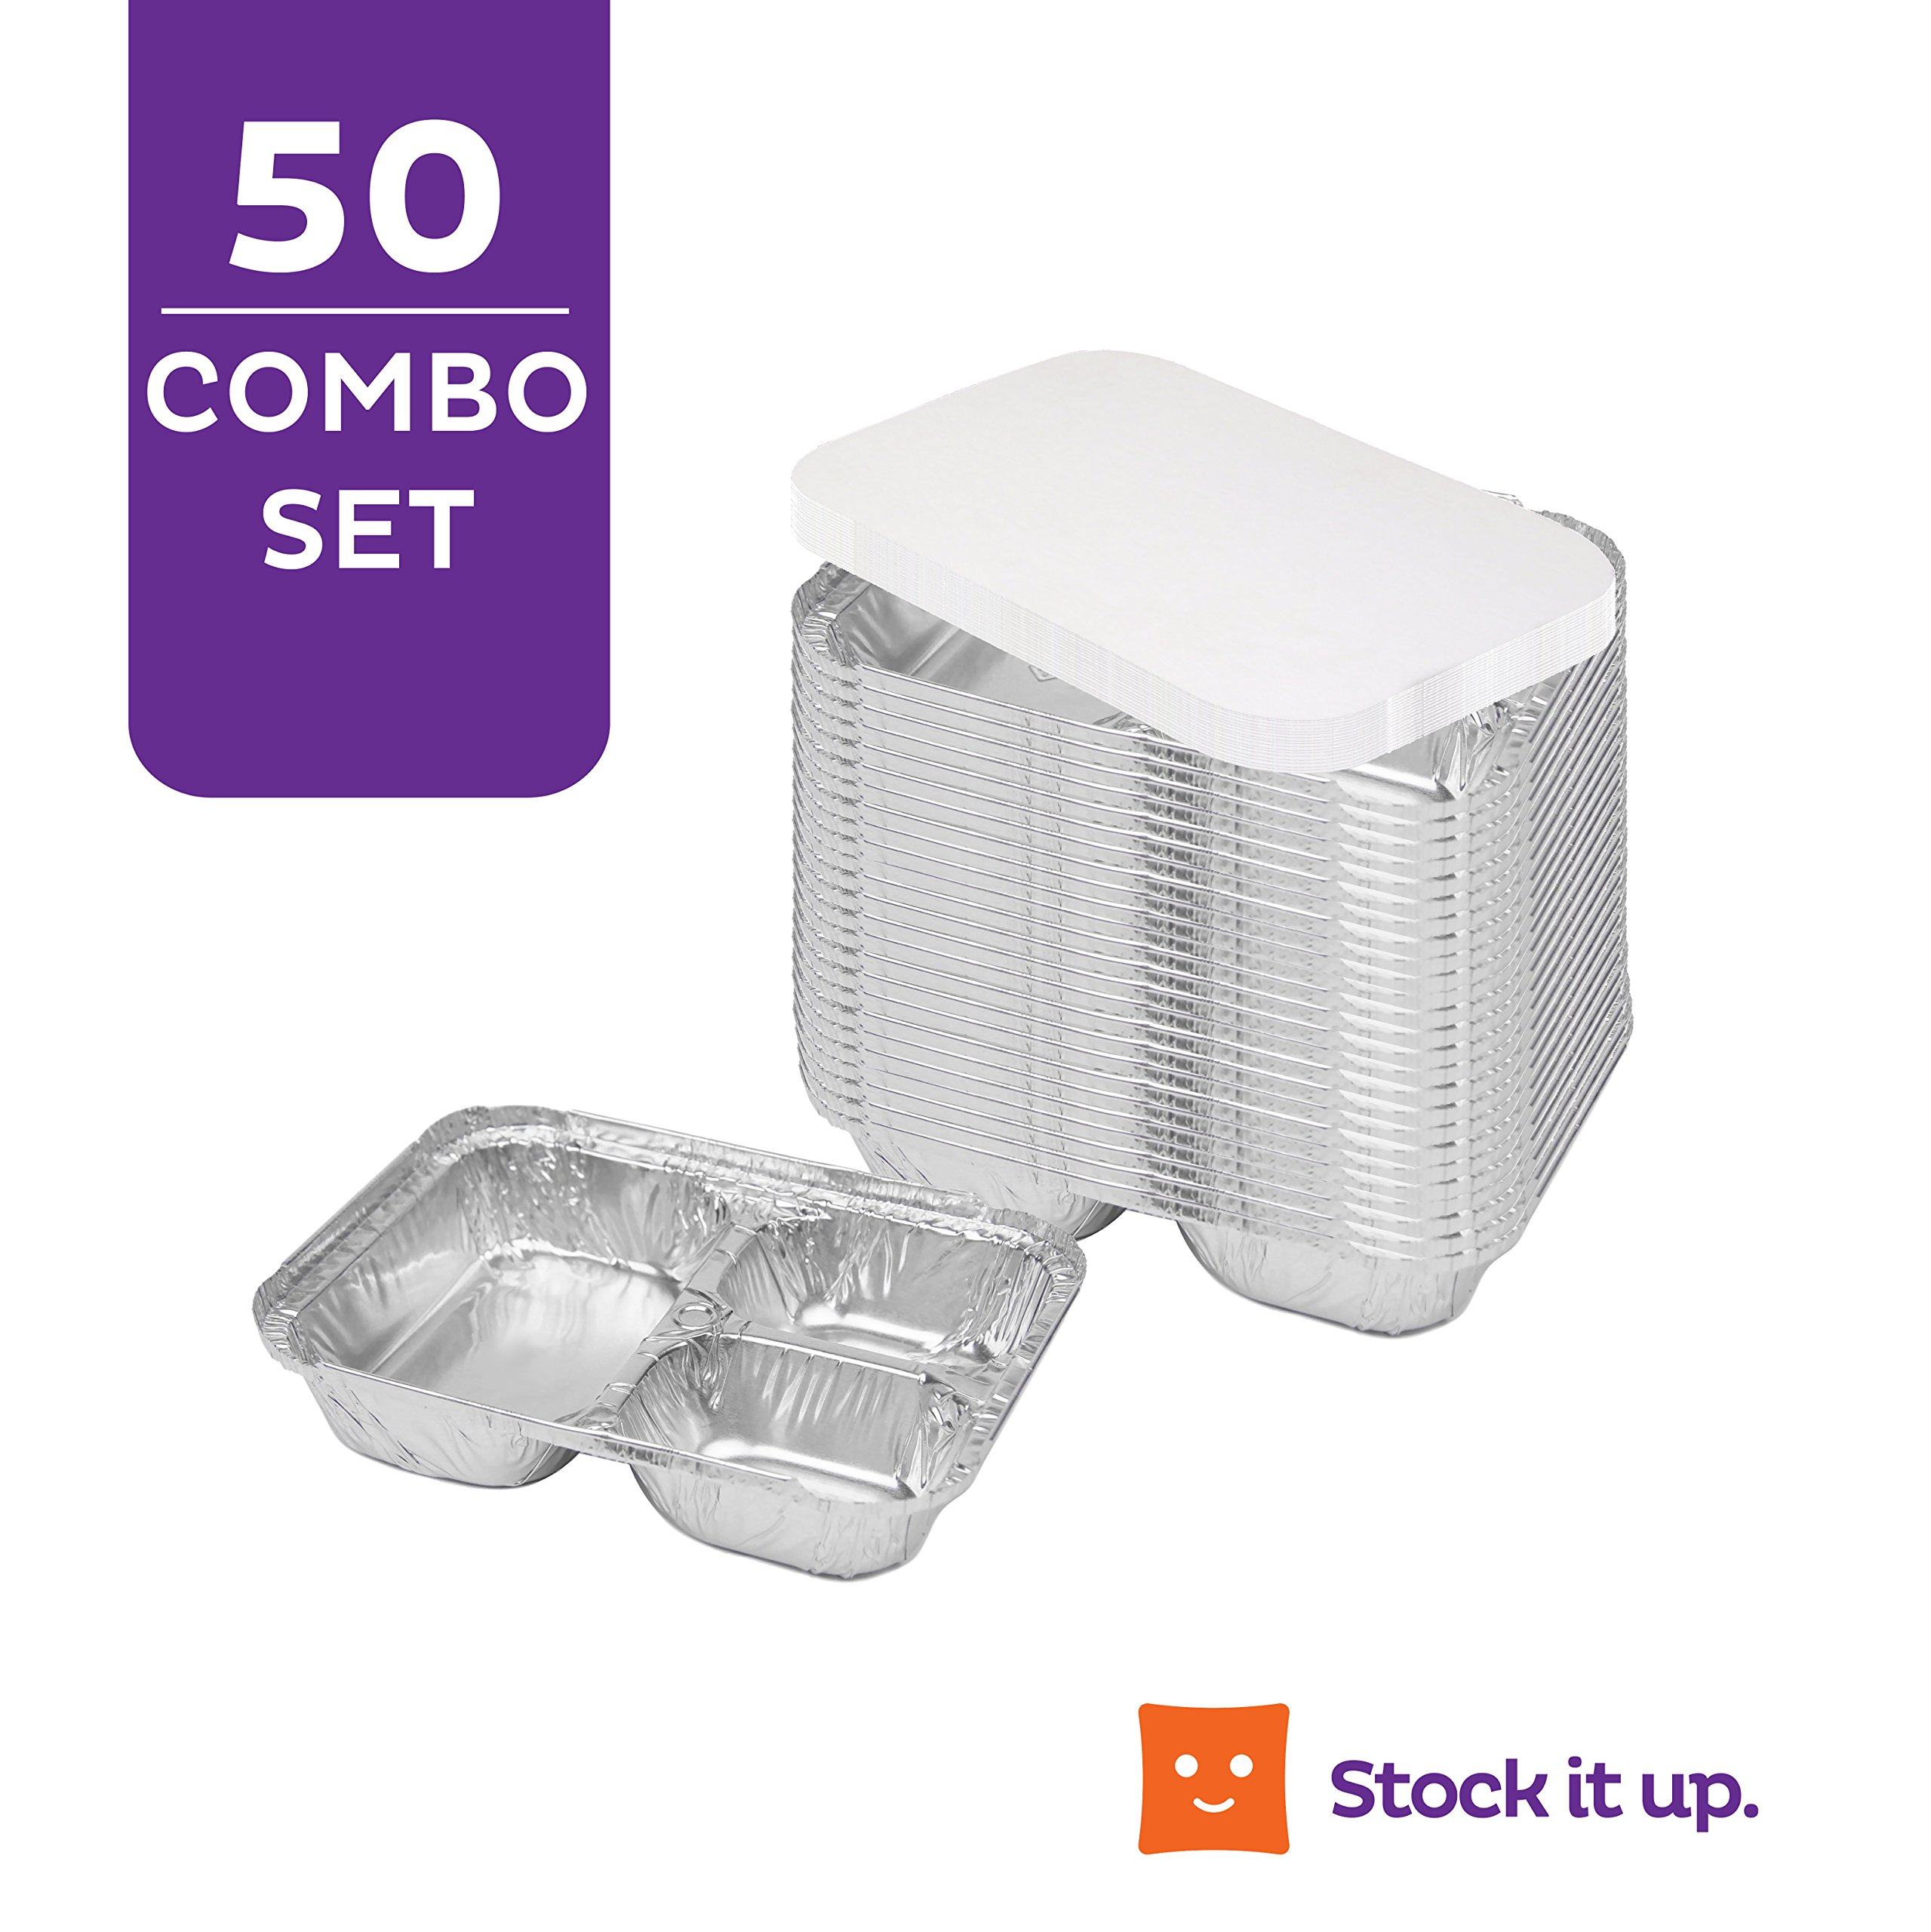 Disposable Aluminum Dinner Tray with Paper Lids (Pack of 50) – 3 Compartment Foil Pan – Perfect for On The Go Lunches, Leftovers, TV Plate Or Takeout – Convenient Airline Food Tray